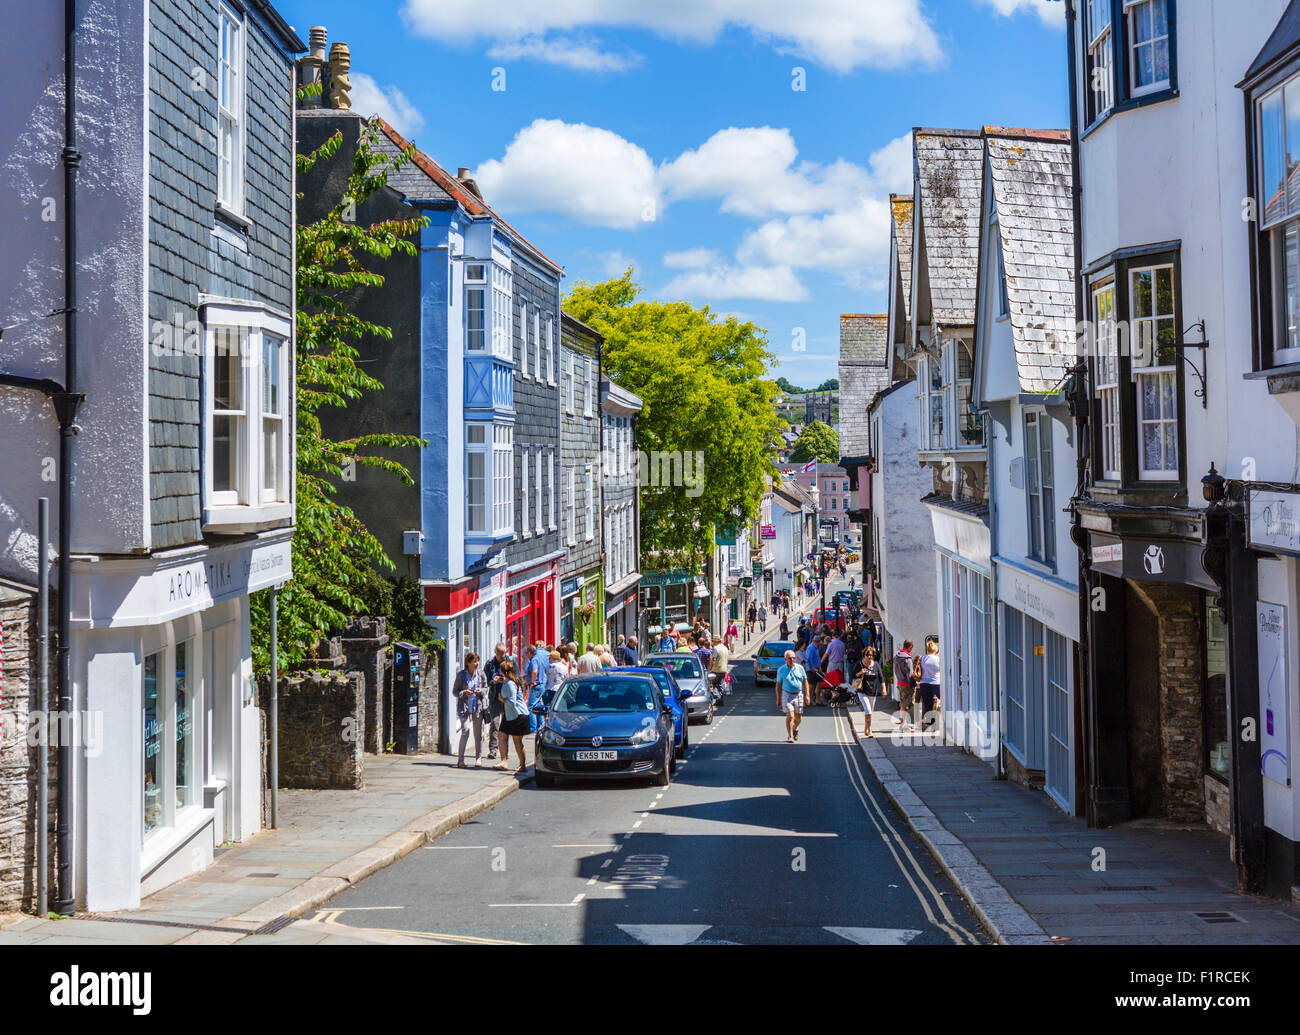 Shops on Fore Street in the town centre, Totnes, Devon, England, UK - Stock Image